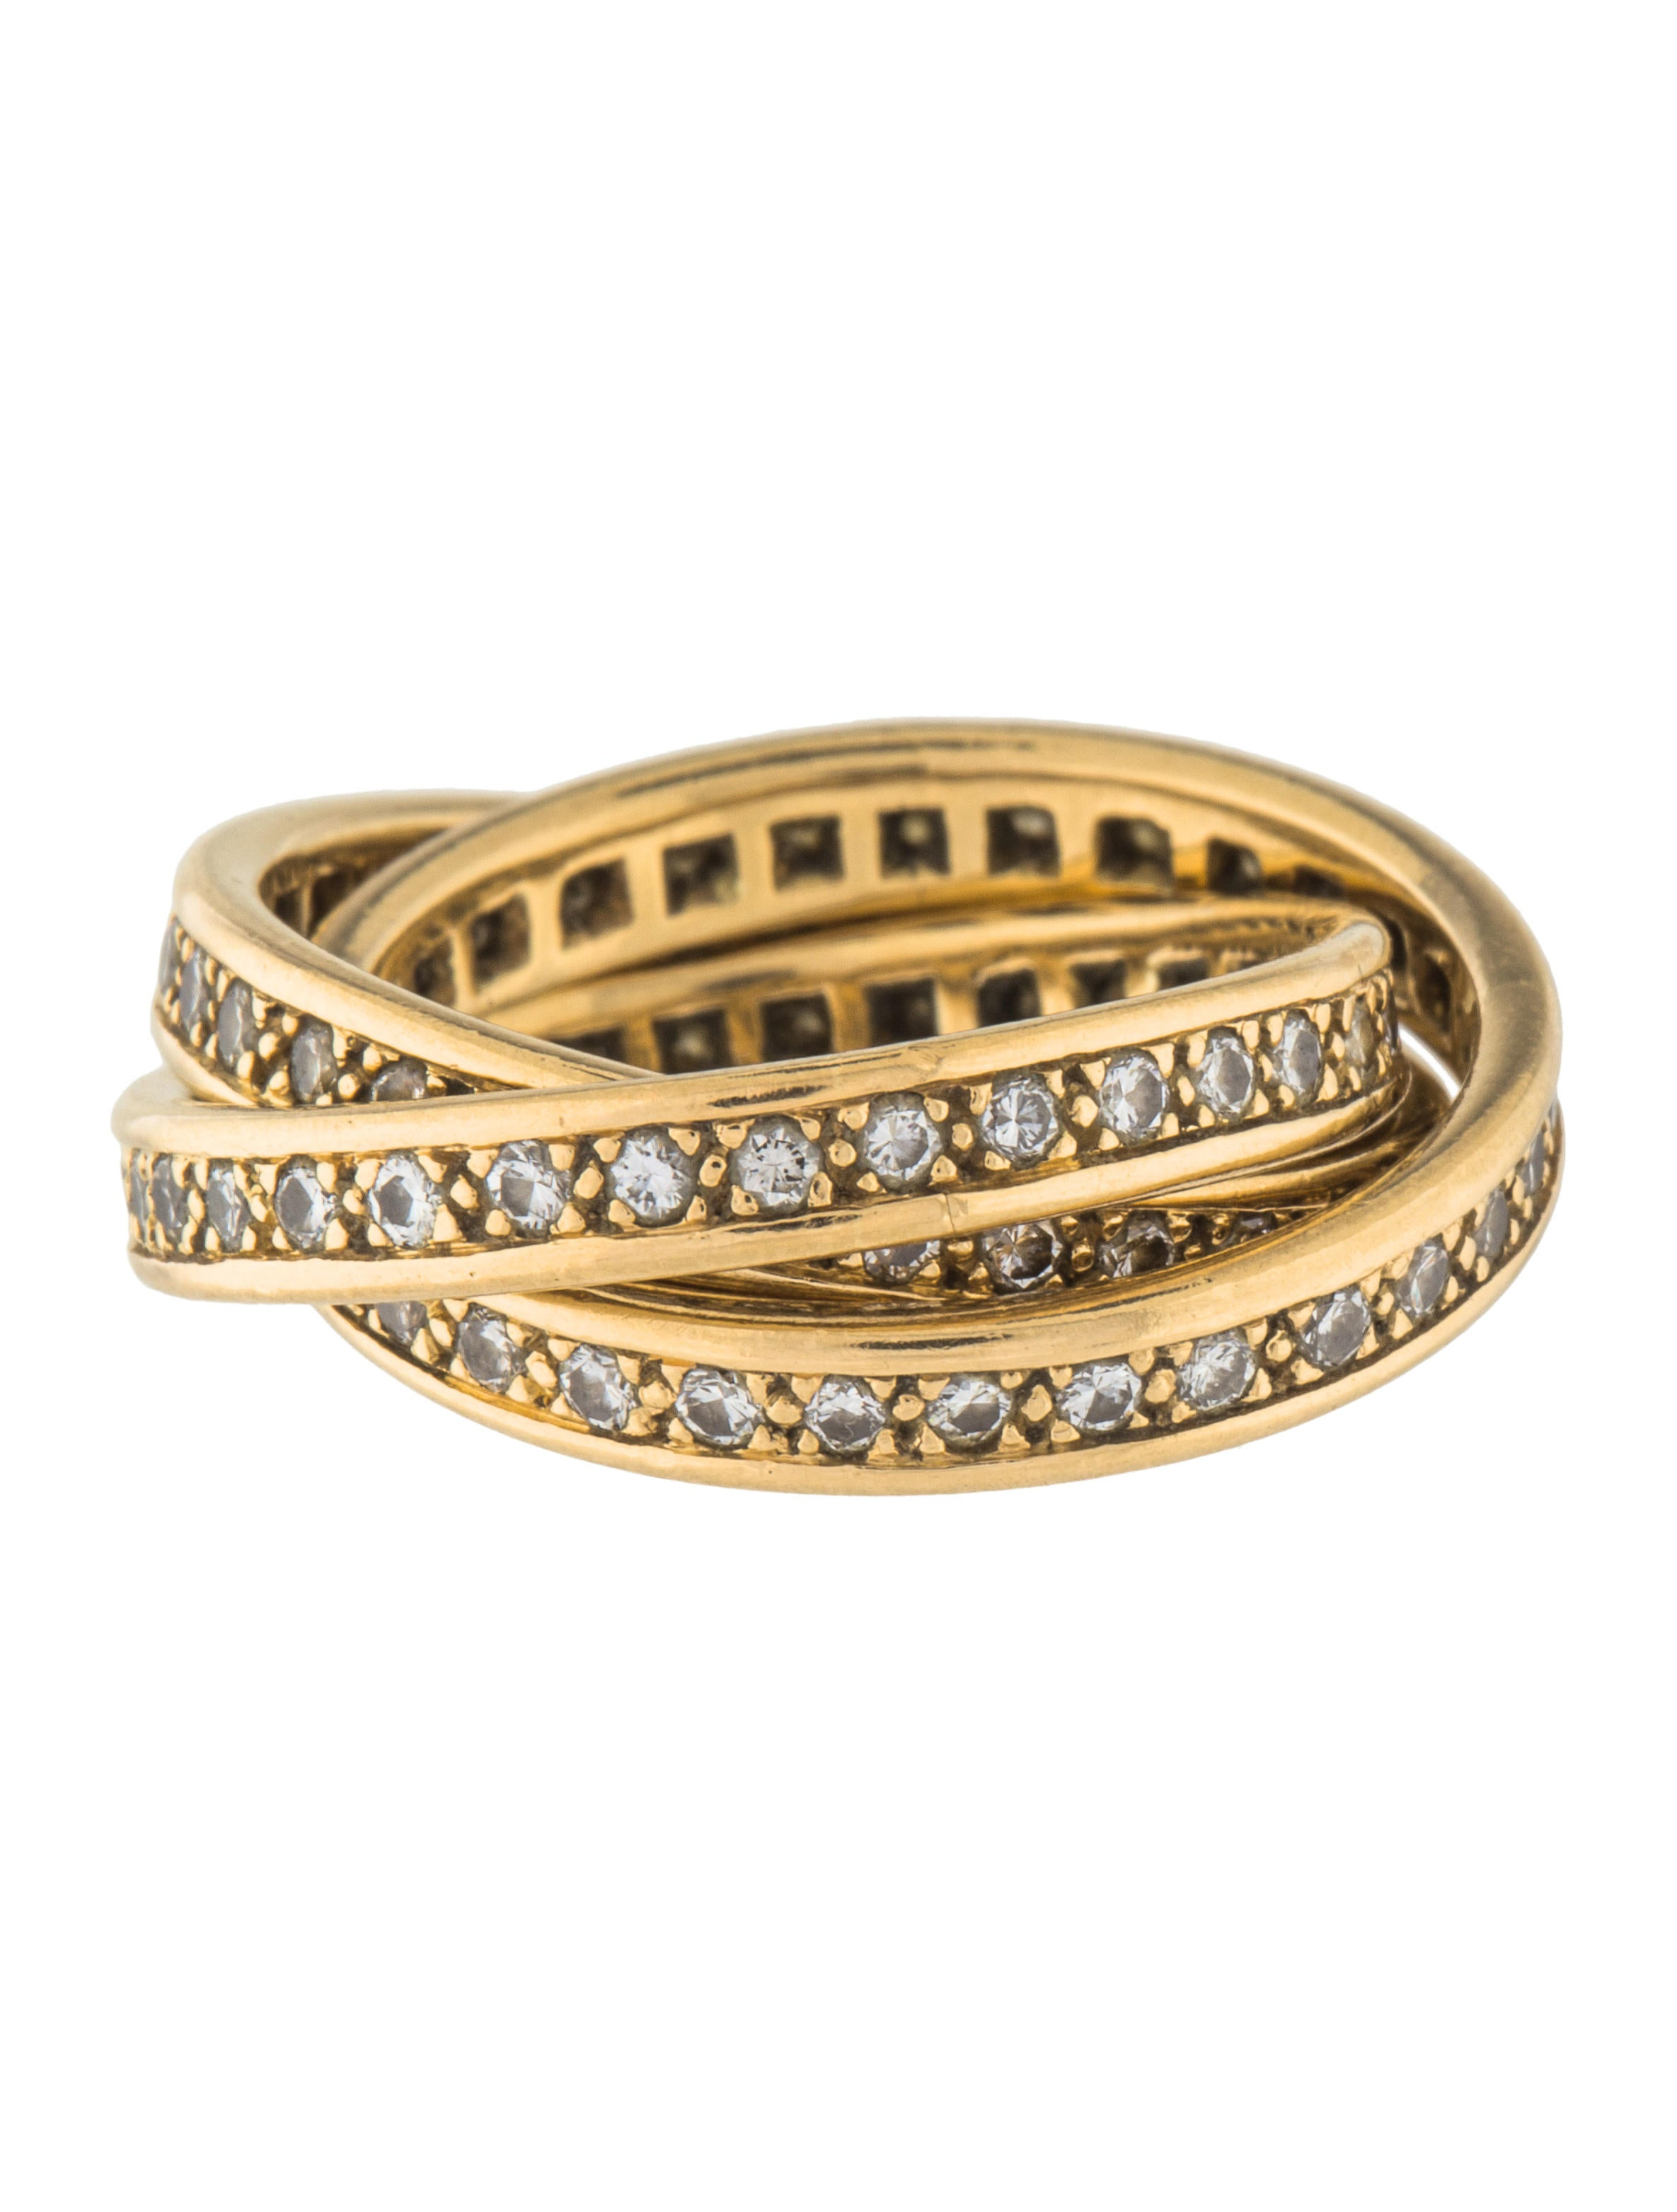 jewellery trinity eternity rings watches product half d les or montreal chemins engagement